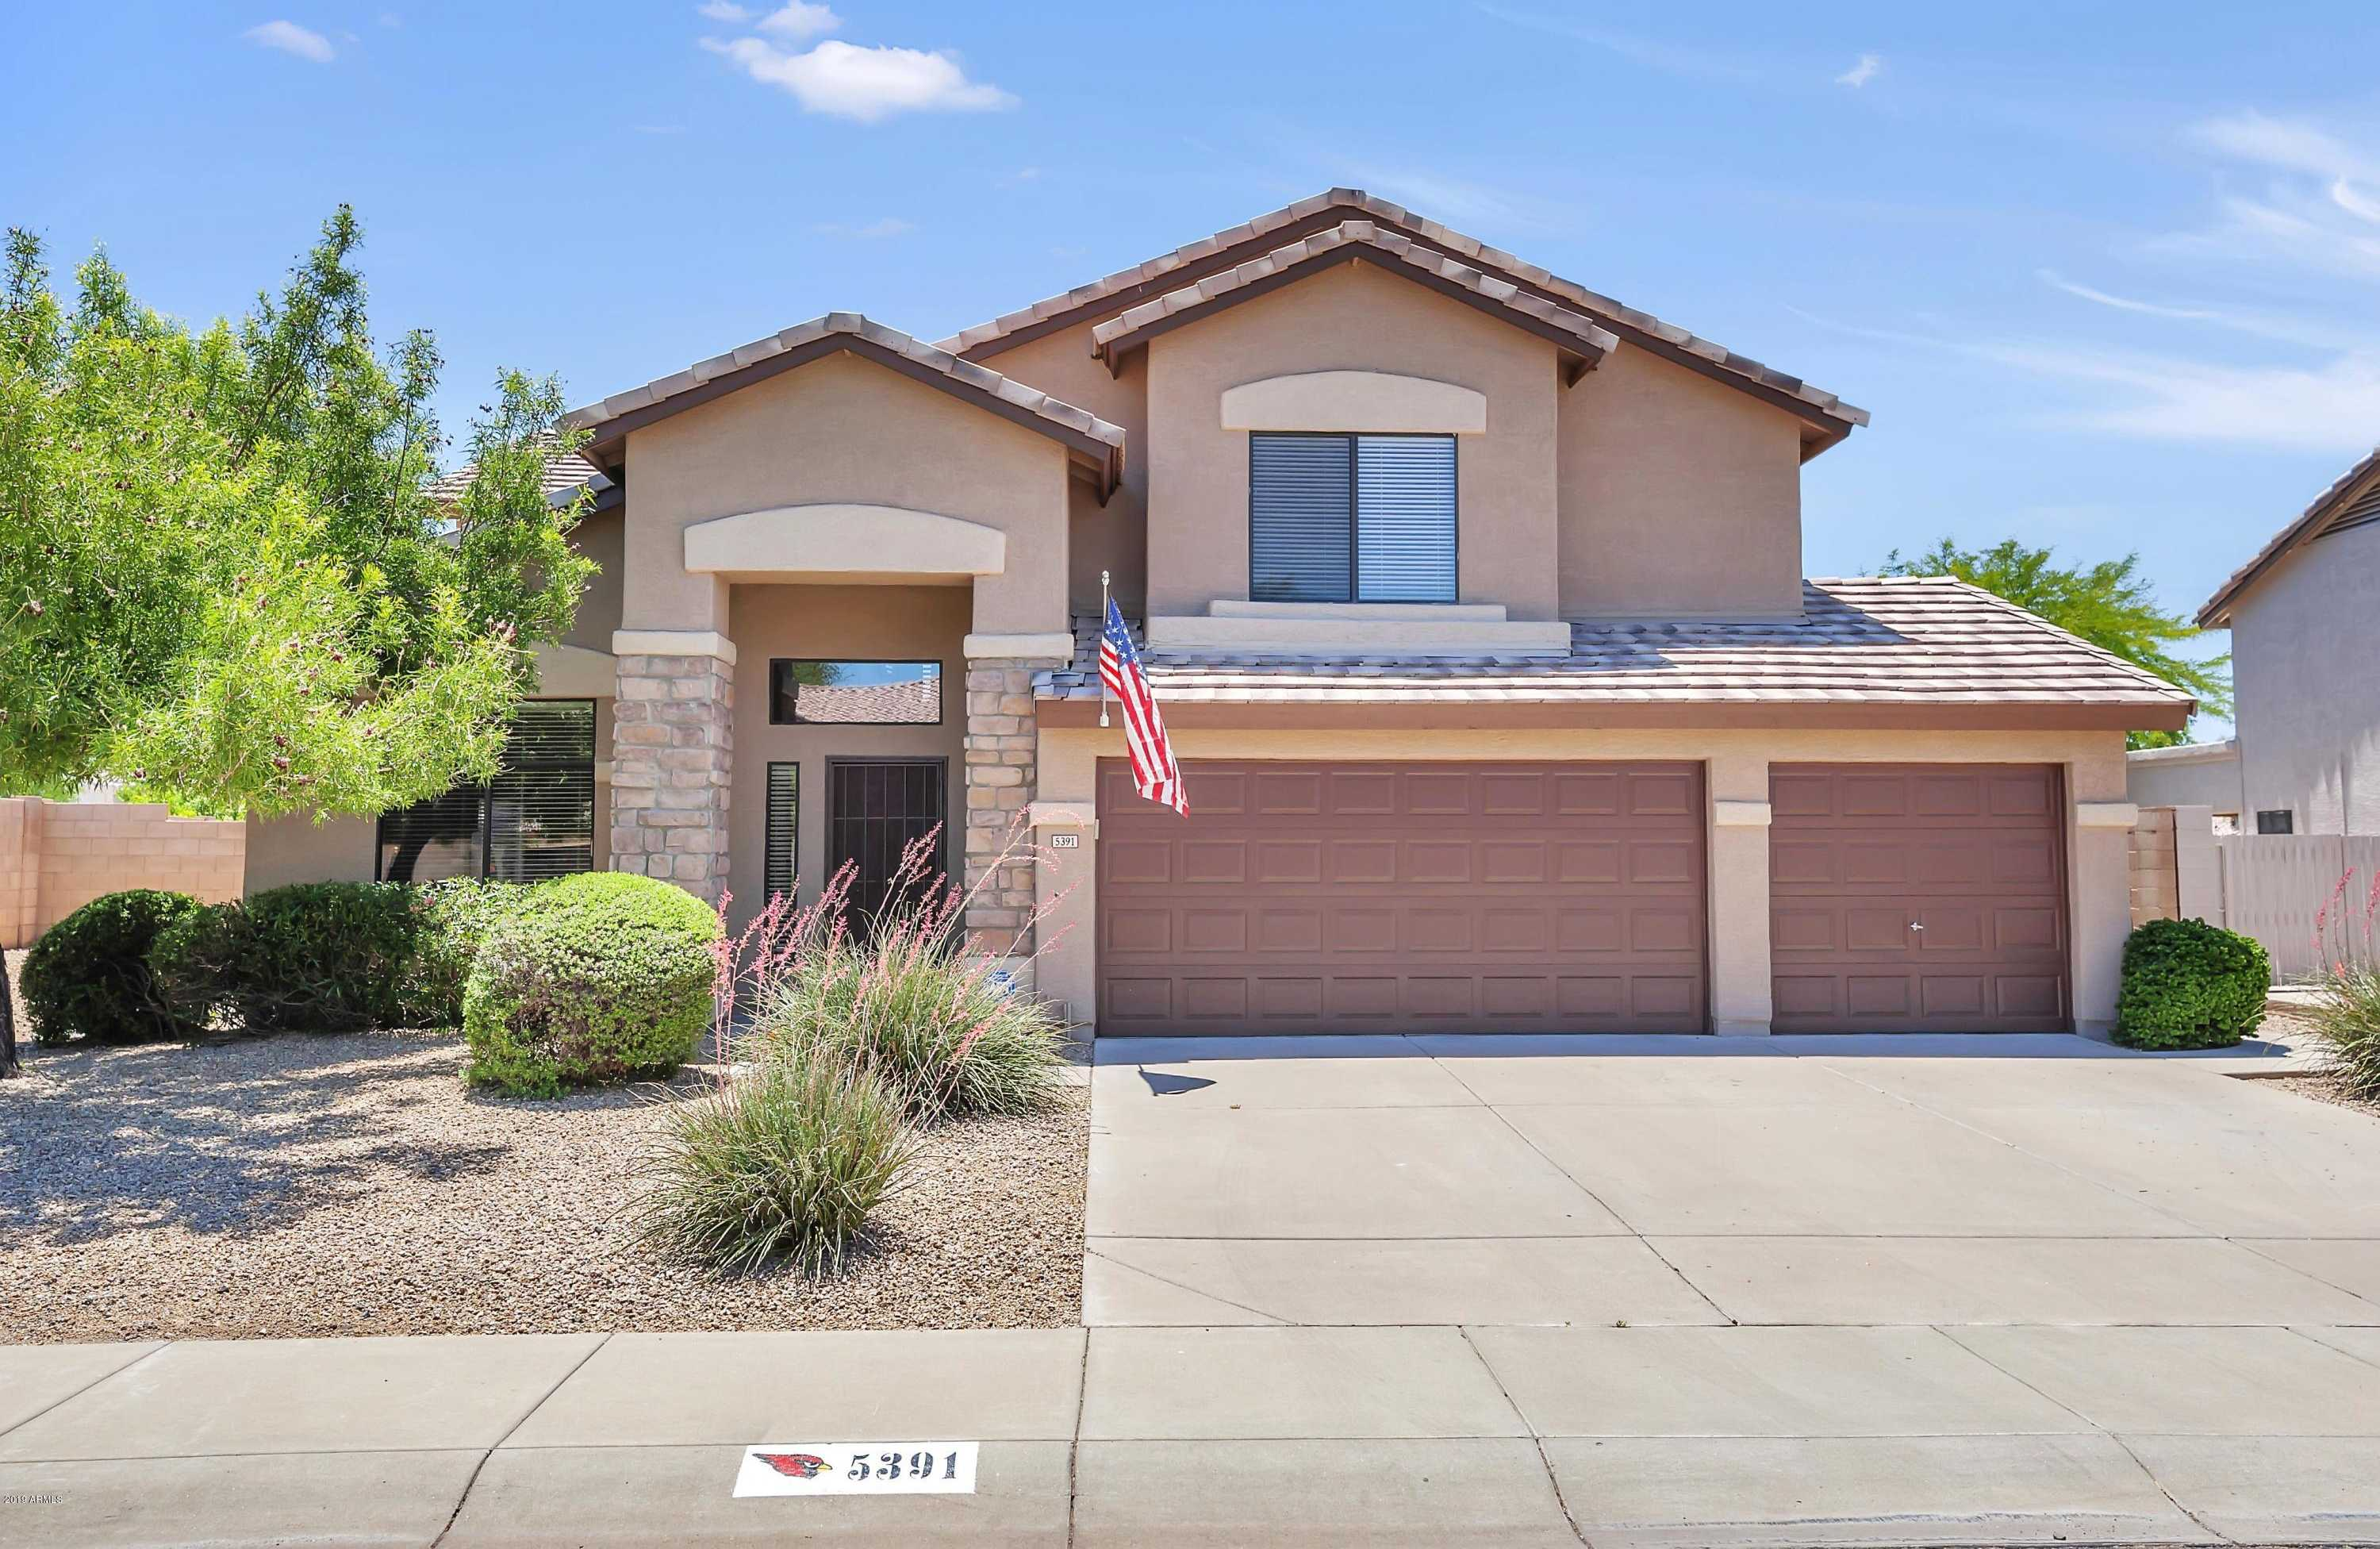 $379,000 - 3Br/3Ba - Home for Sale in Union Hills 2, Glendale